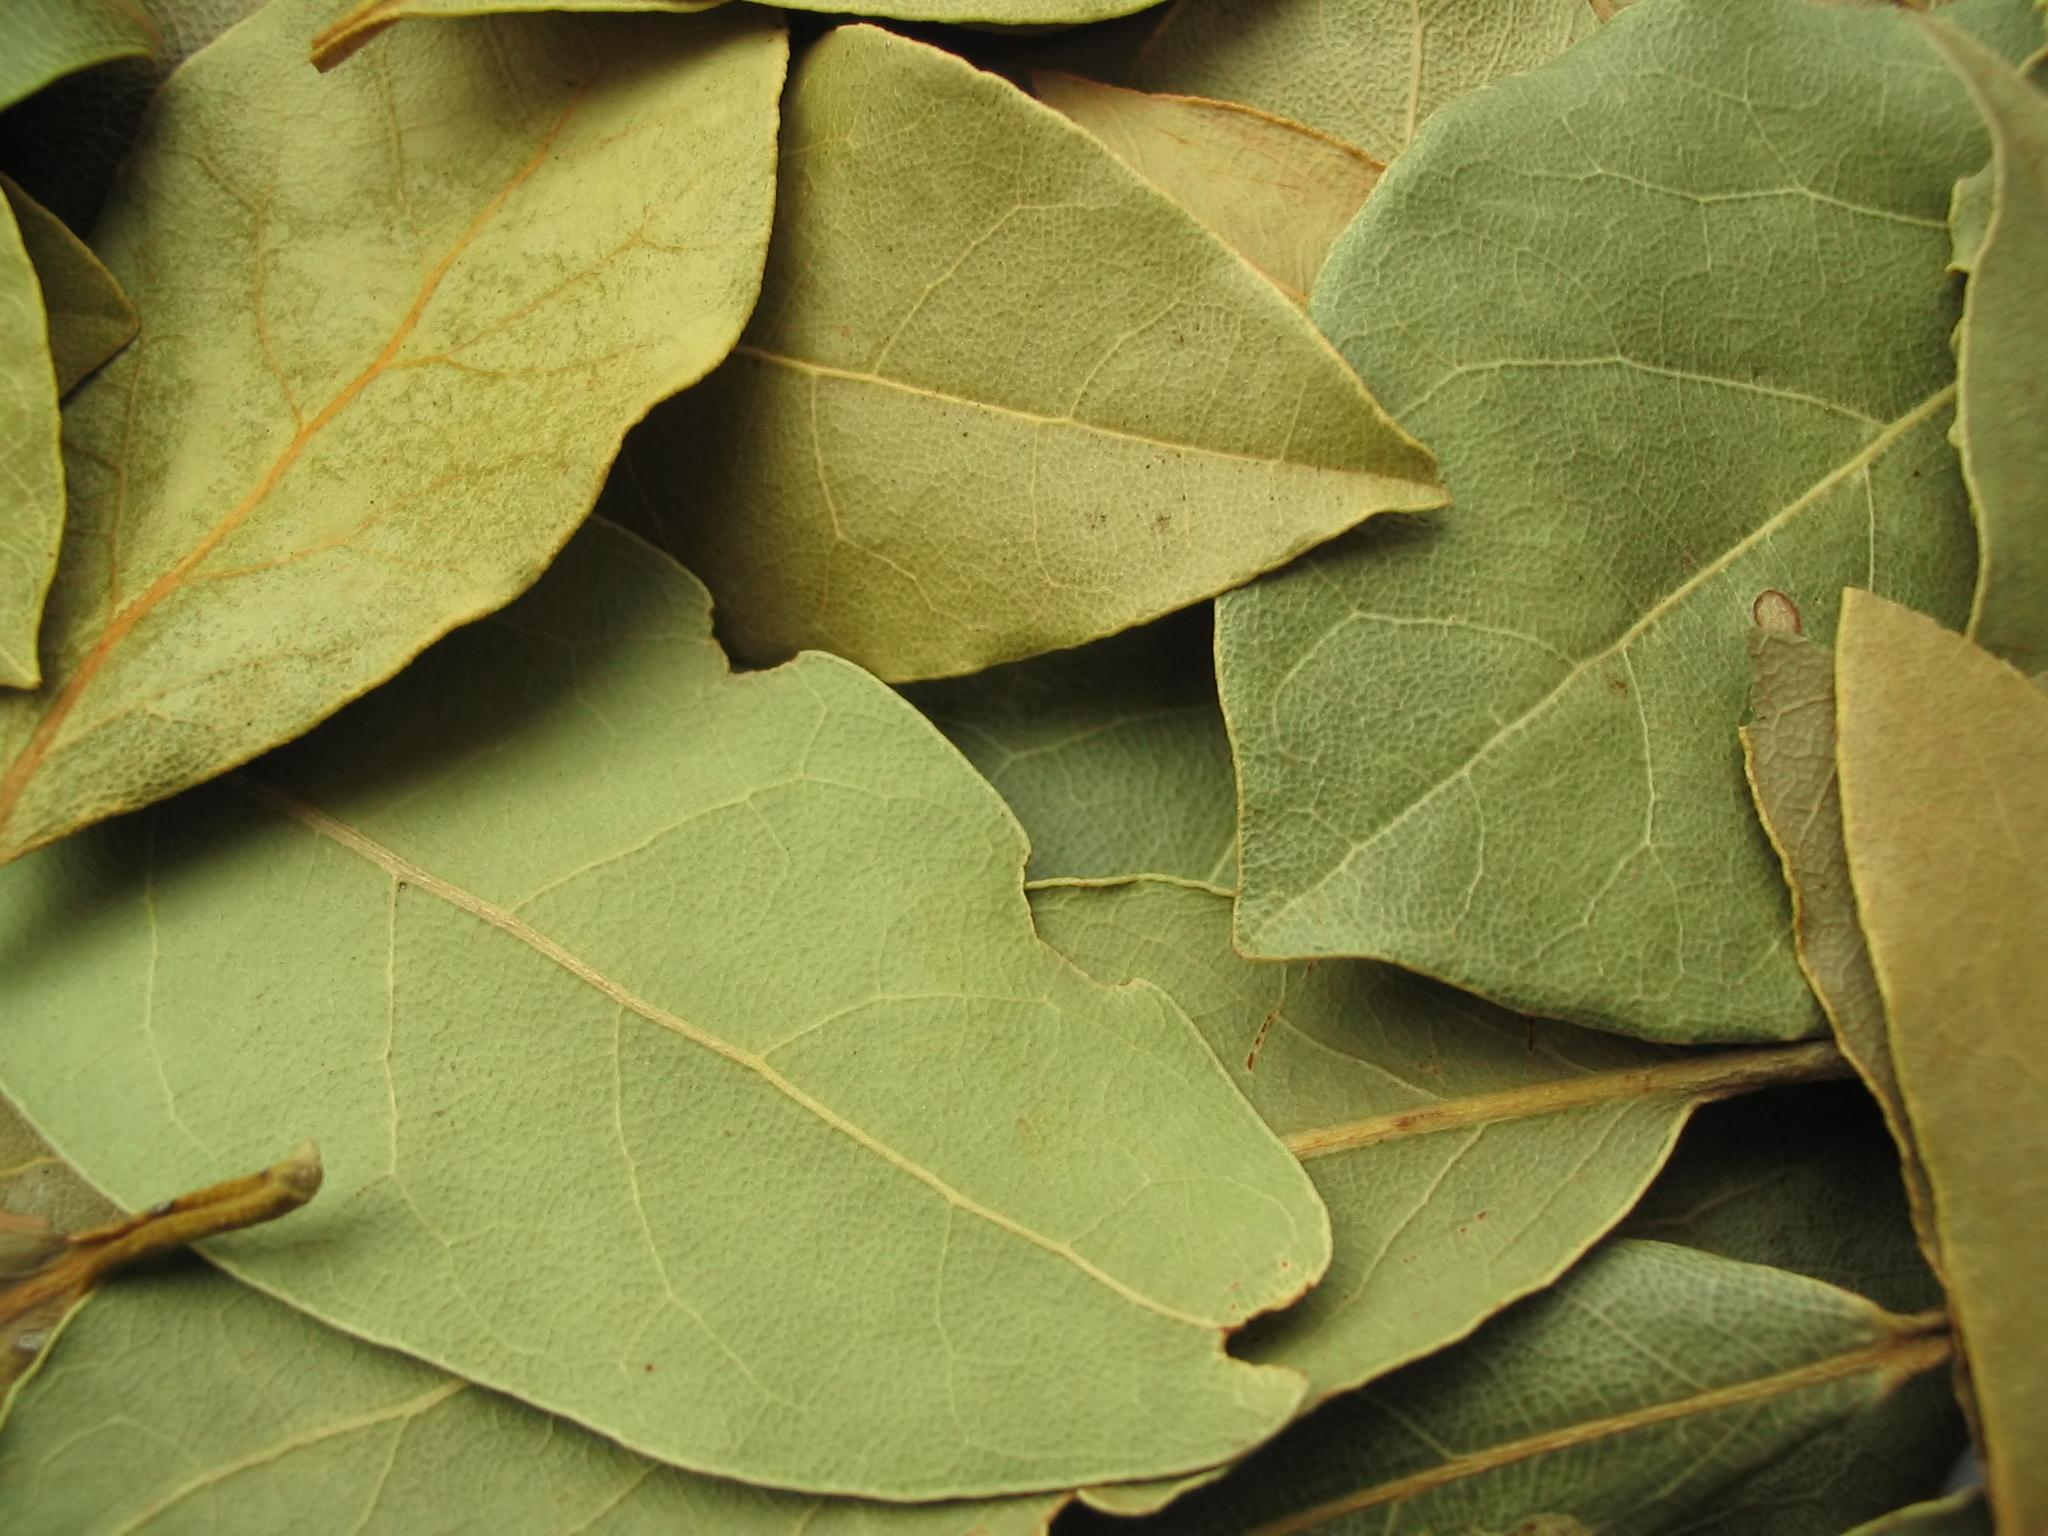 bay leaf--a surprising aphrodisiac